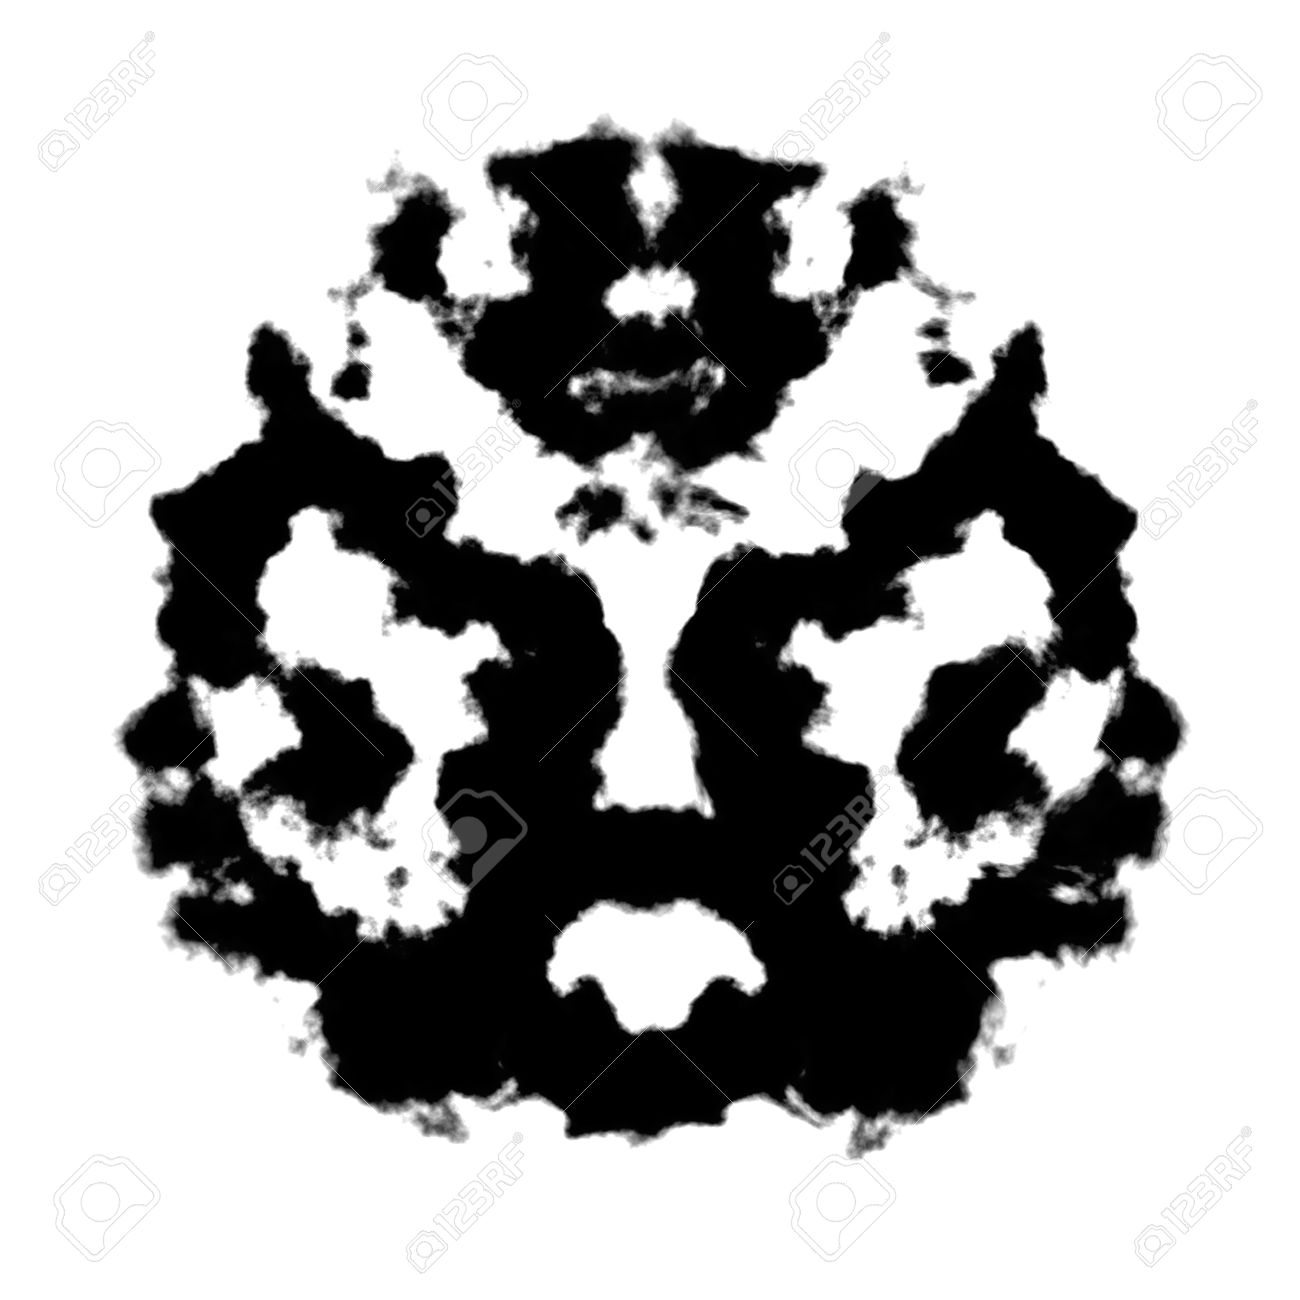 Rorschach Inkblot Test Illustration, Random Abstract Design Stock.